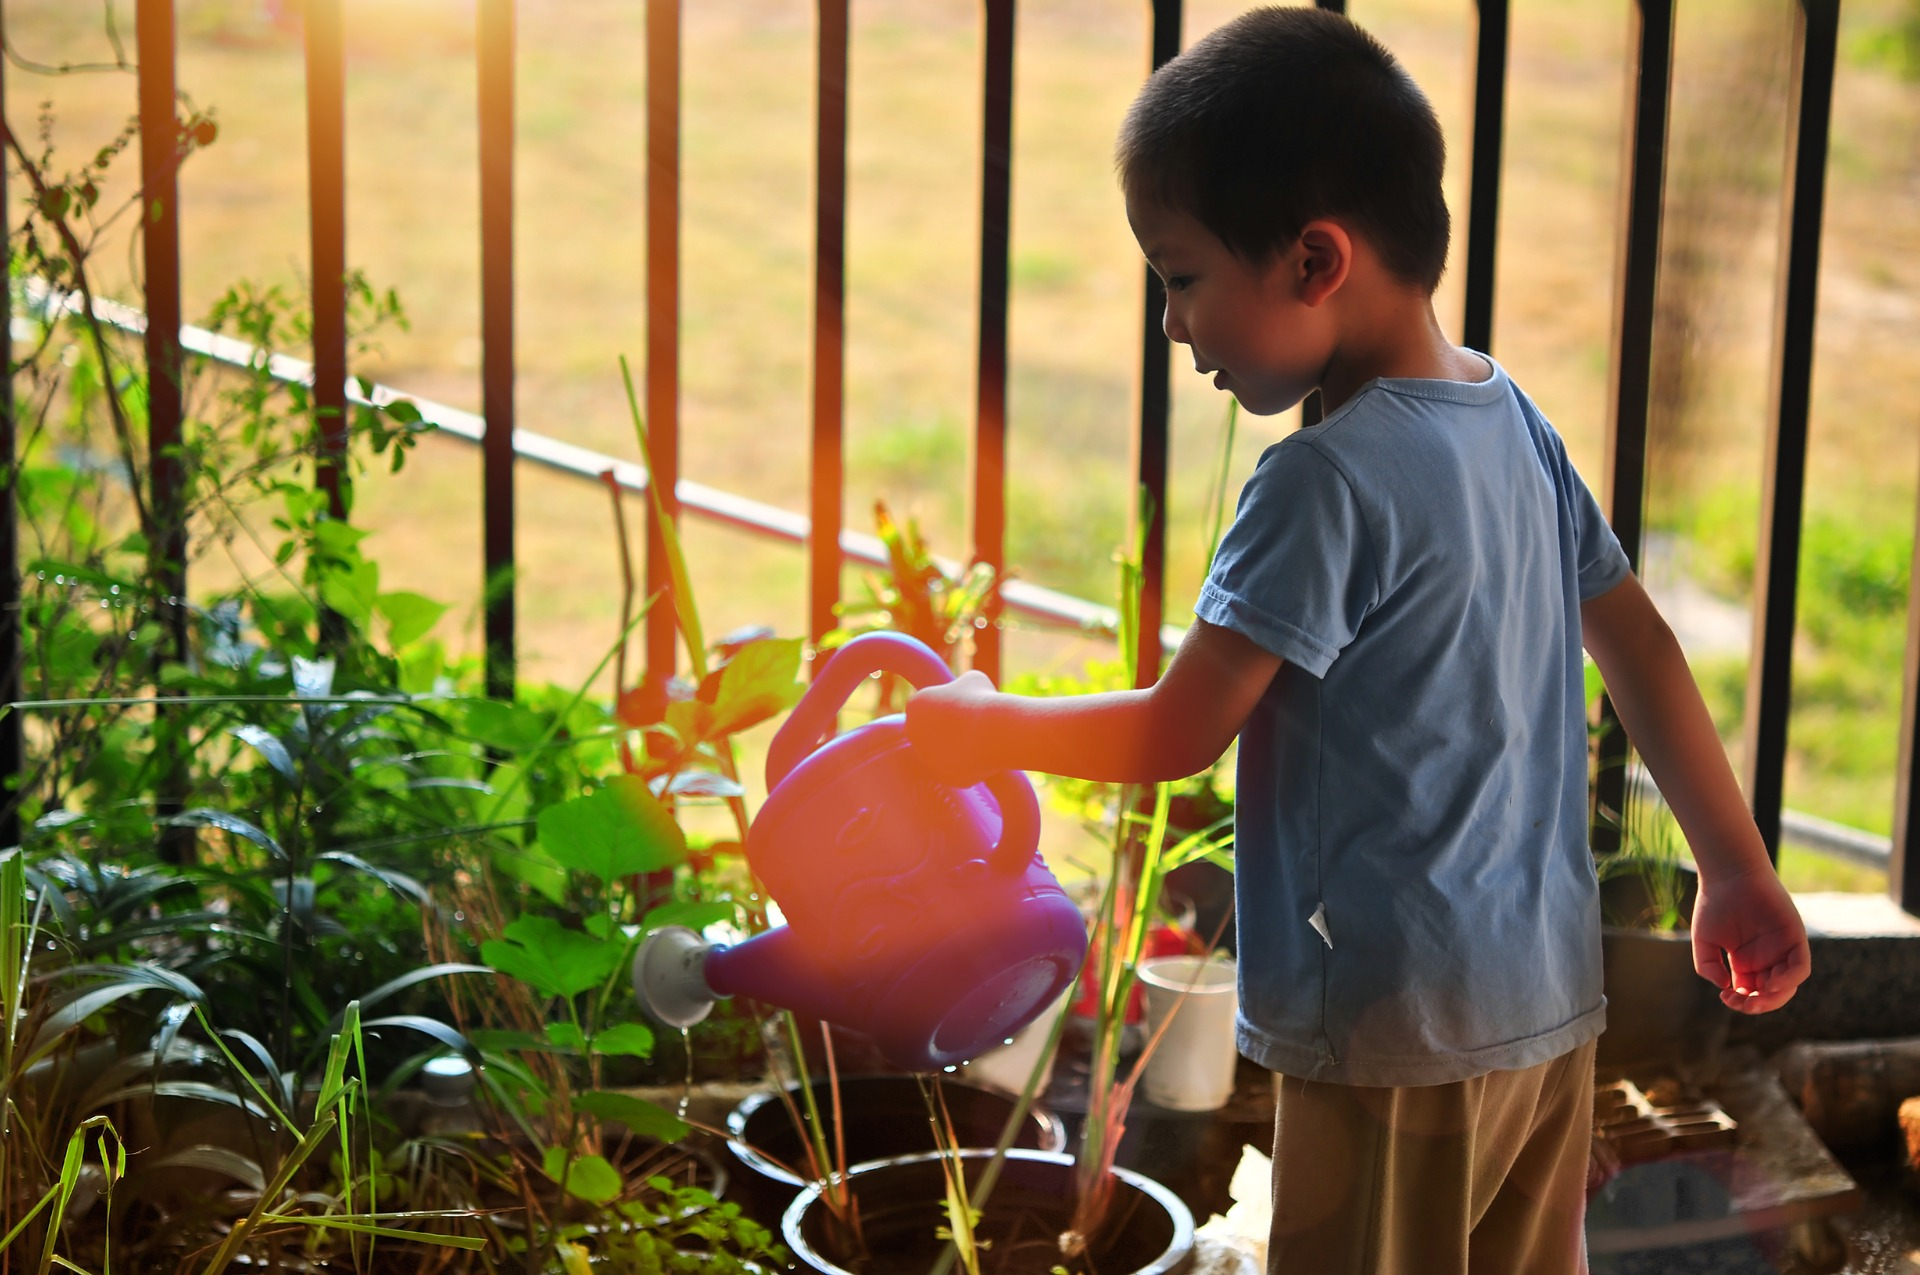 Join in the FREE gardening fun this weekend!